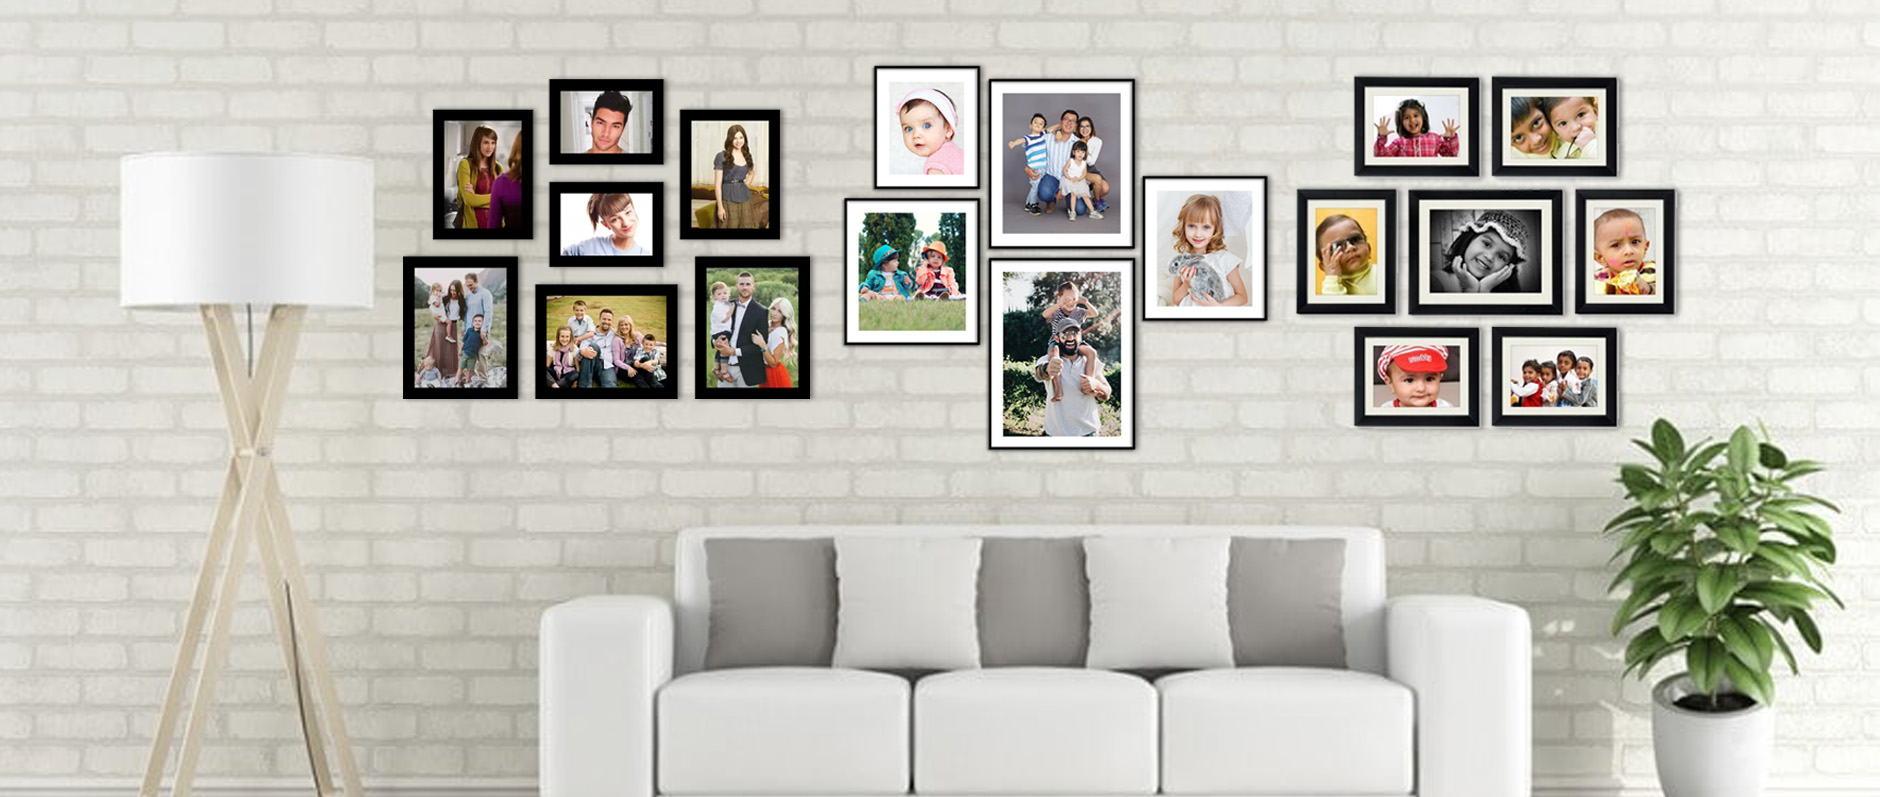 Frame your favorite moments